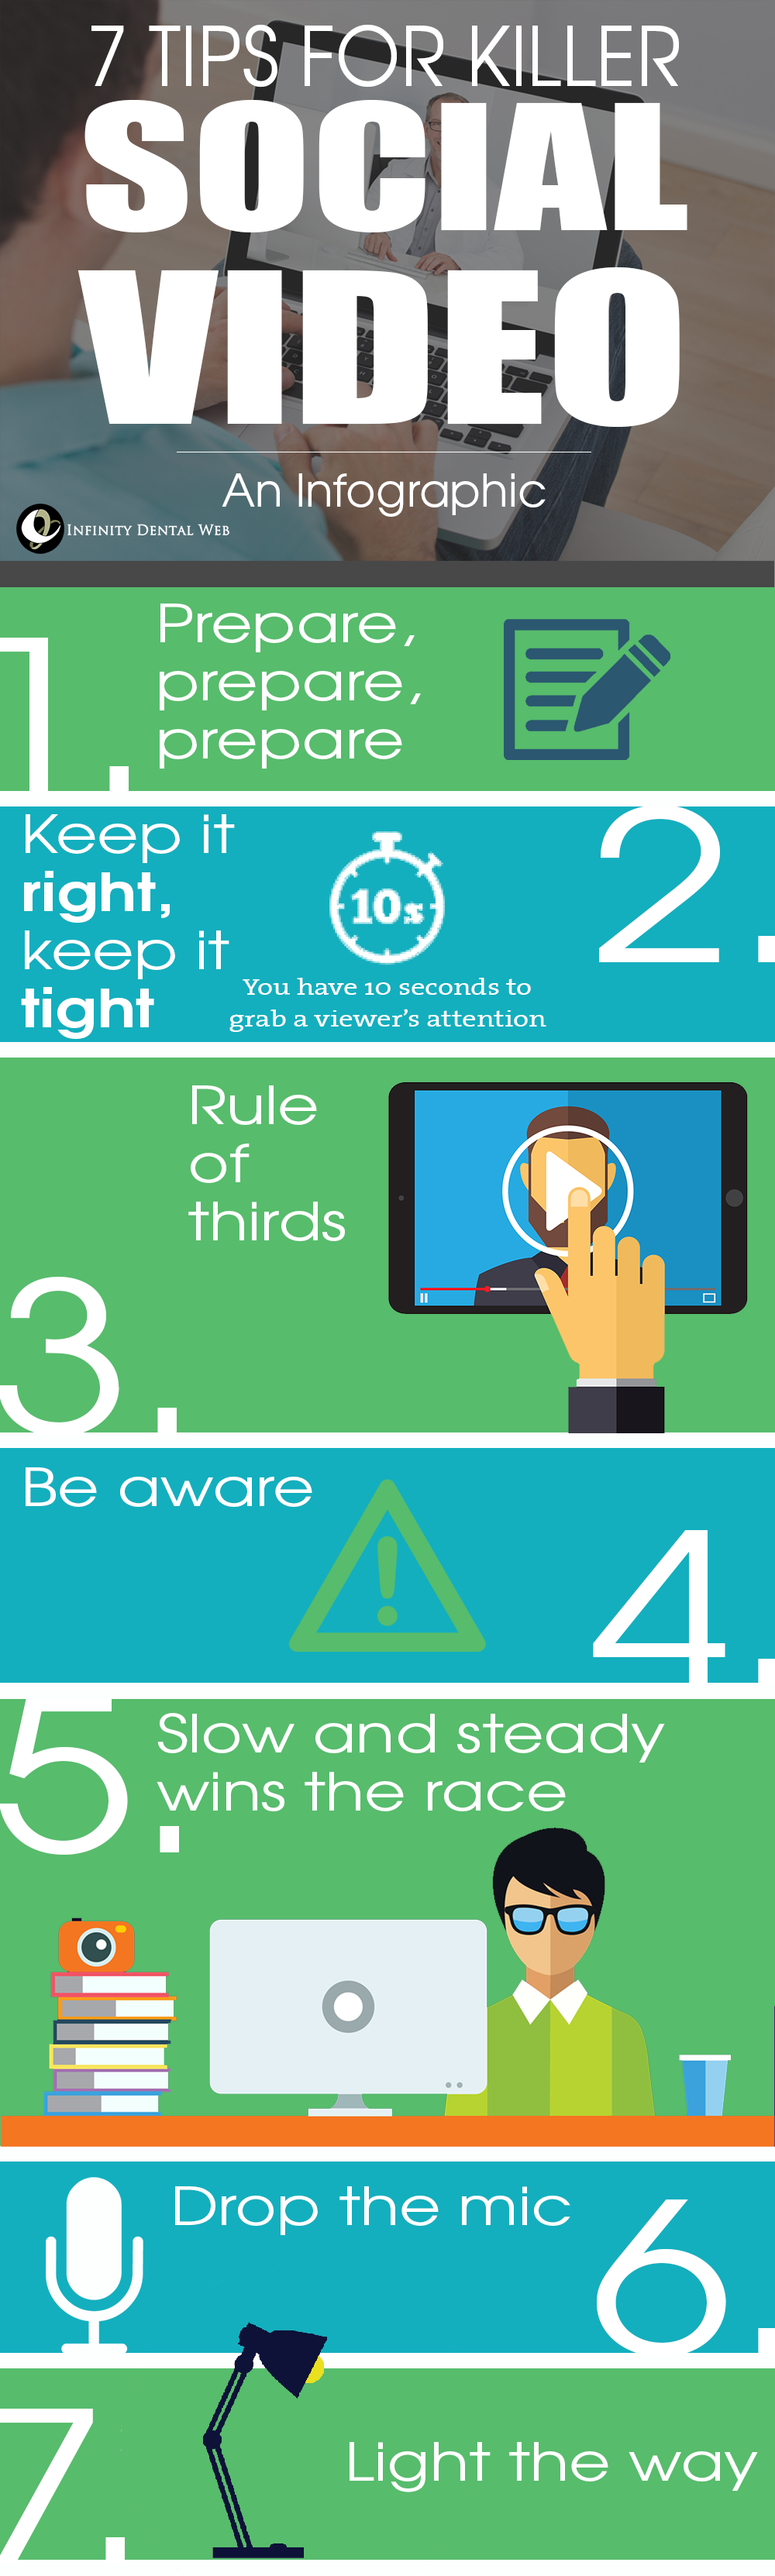 Infographic with tips for better social video.